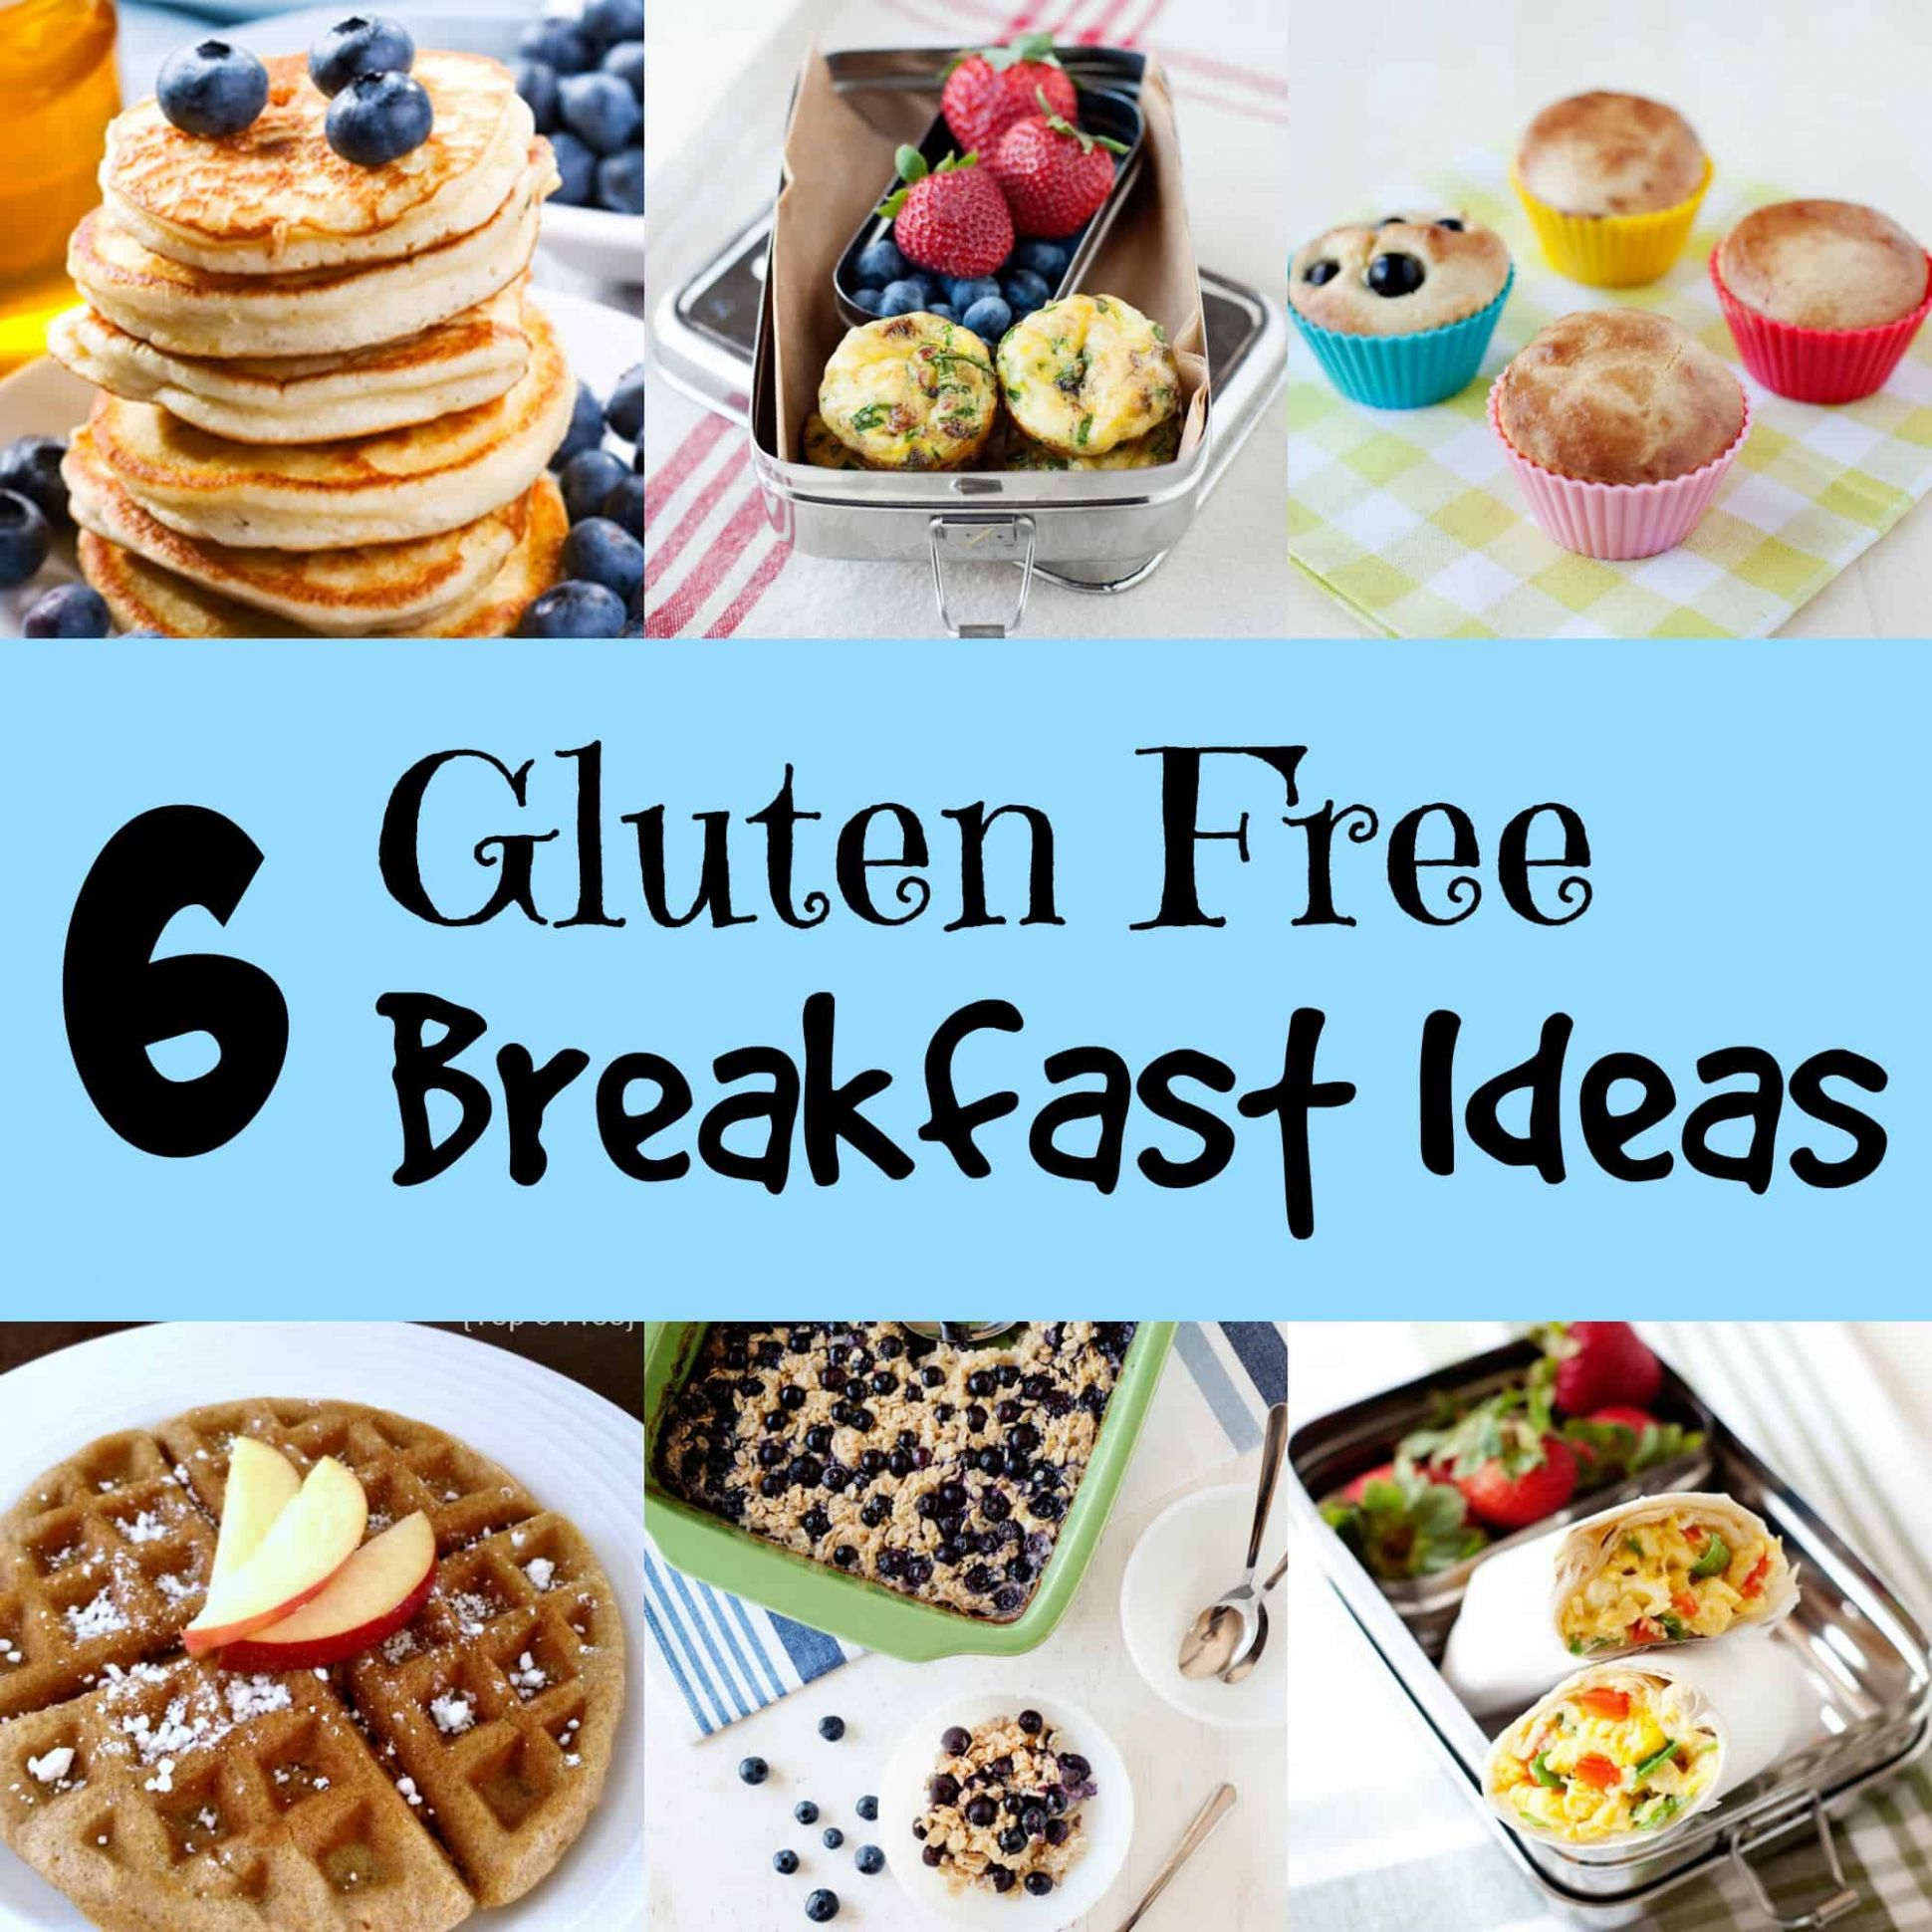 11 Gluten Free Breakfast Ideas - MOMables